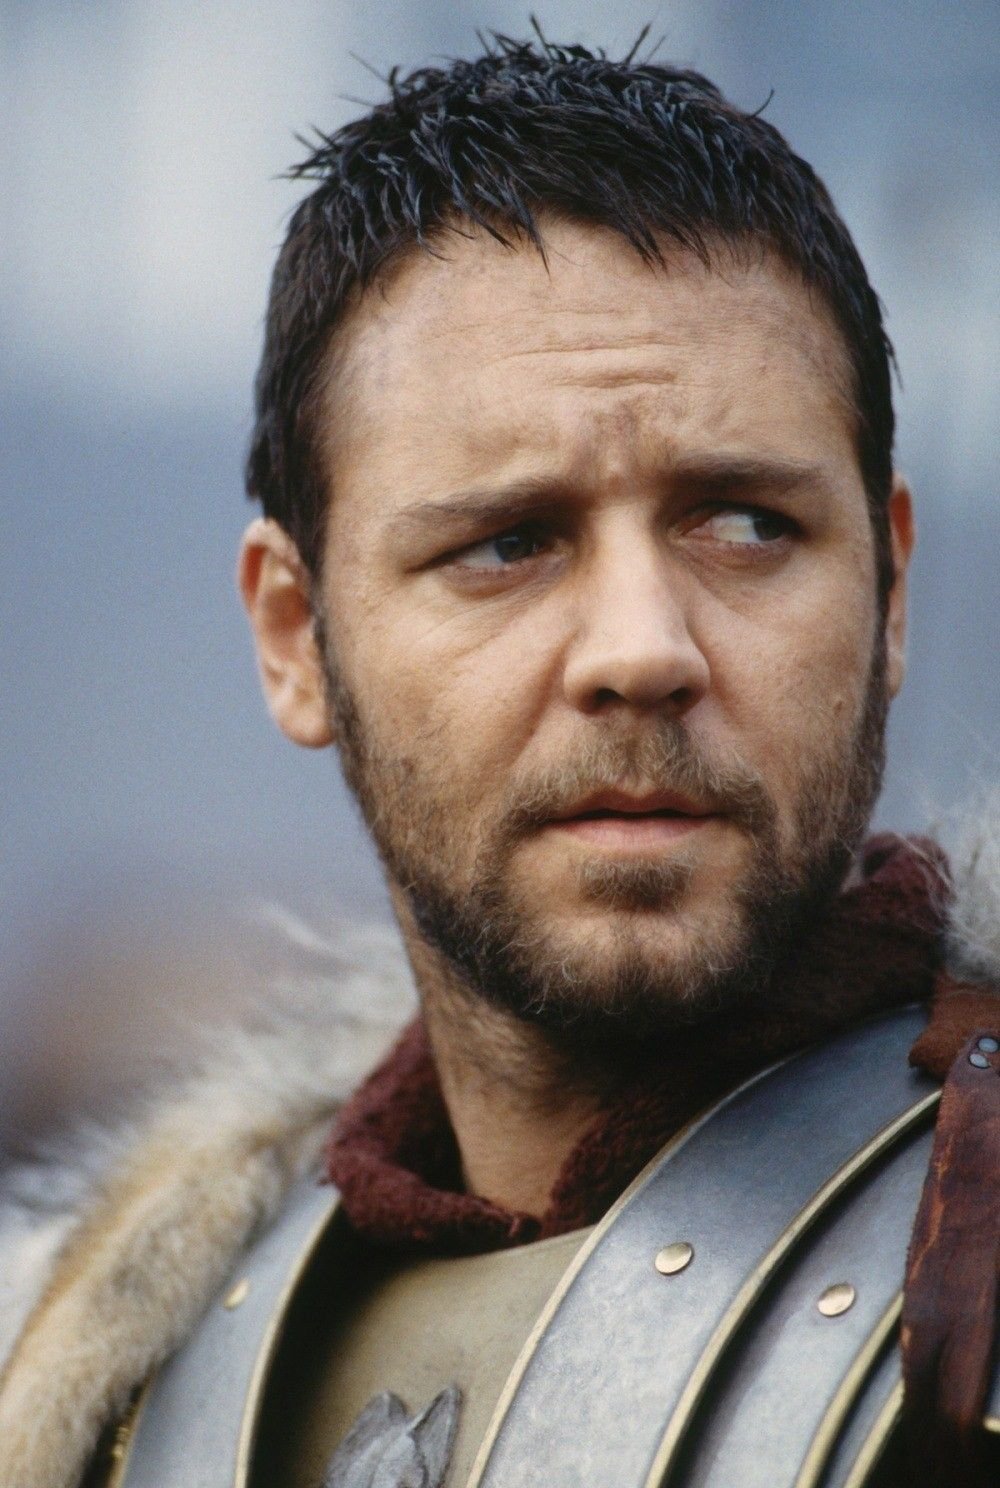 Gladiator, 2000 - What we do in life echoes in eternity...